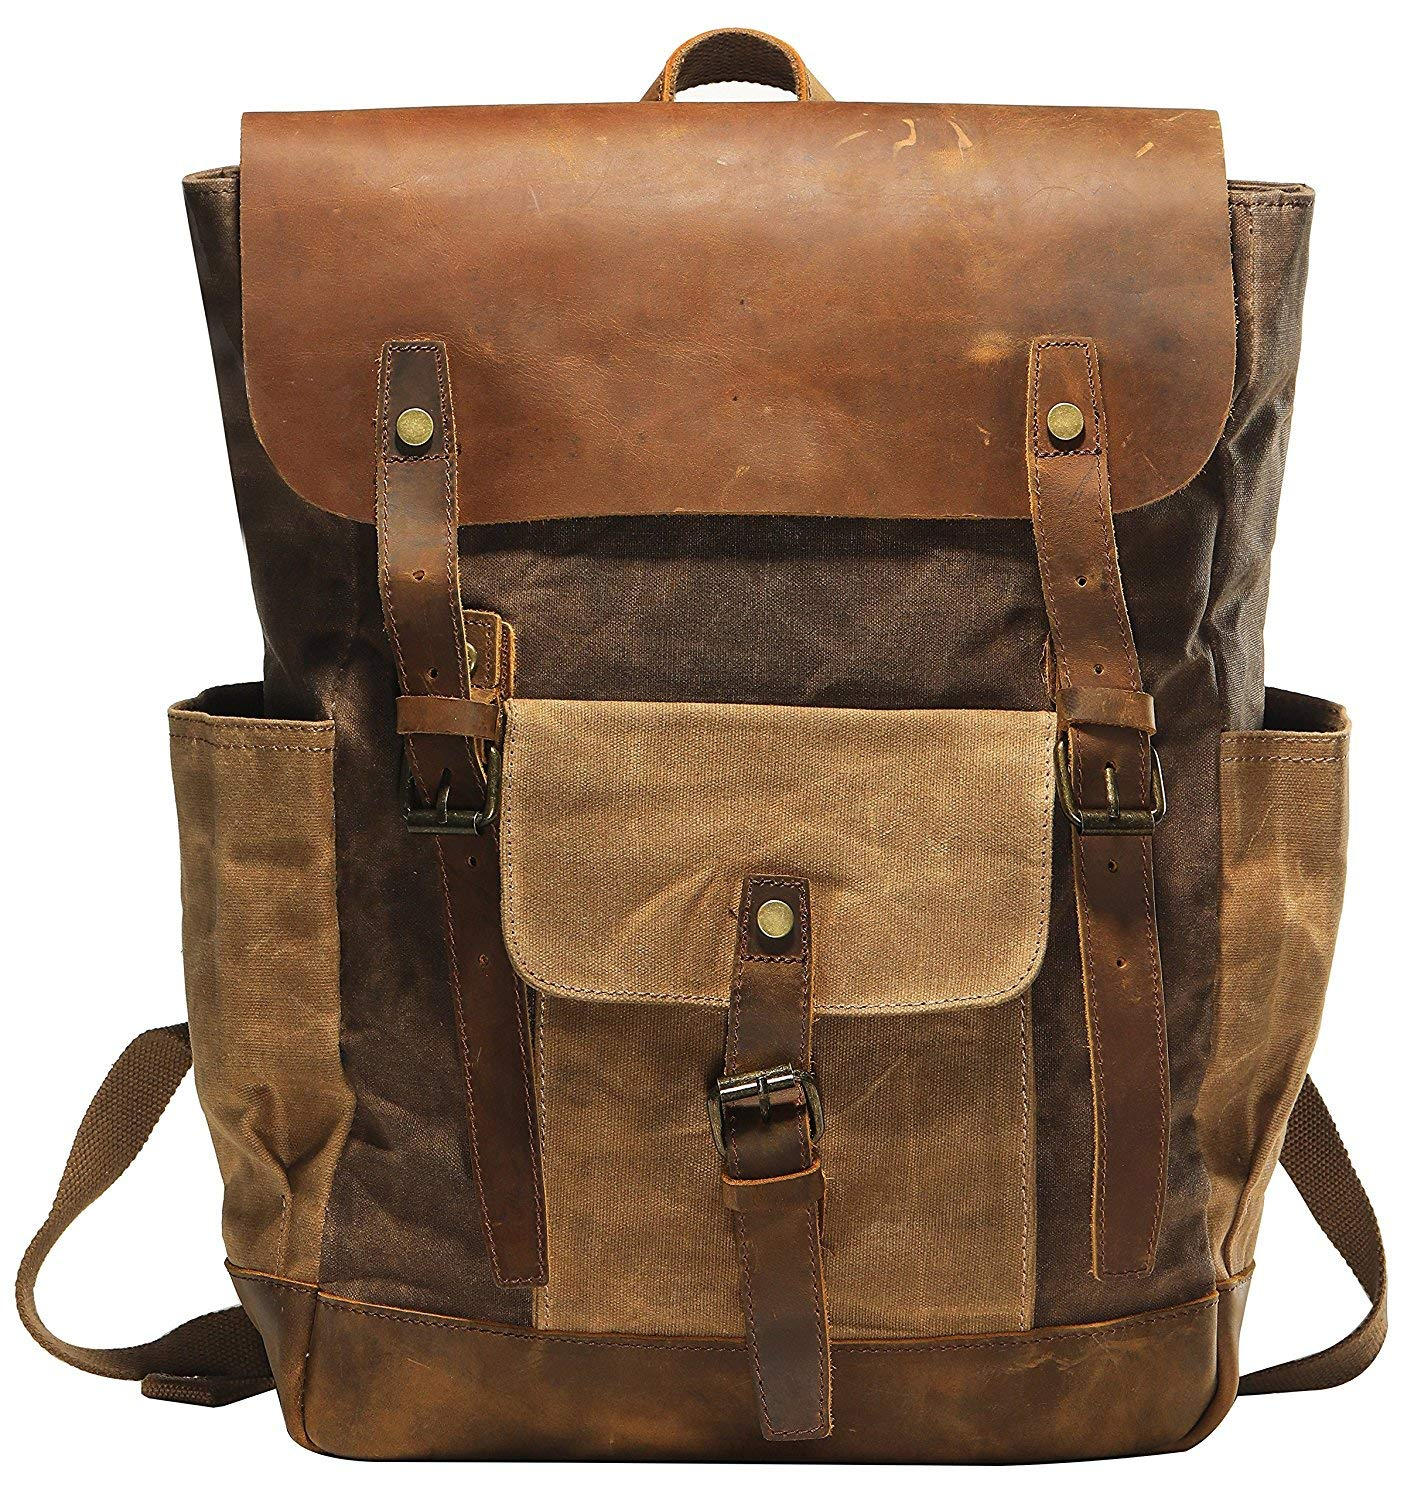 Vintage Canvas waxed Leather Backpack w/Laptop Storage (Large) High School, College, Travel Bag | Canvas and Cotton Craftsmanship | All-Purpose Rucksack for Men, Women, Kids by Roger William